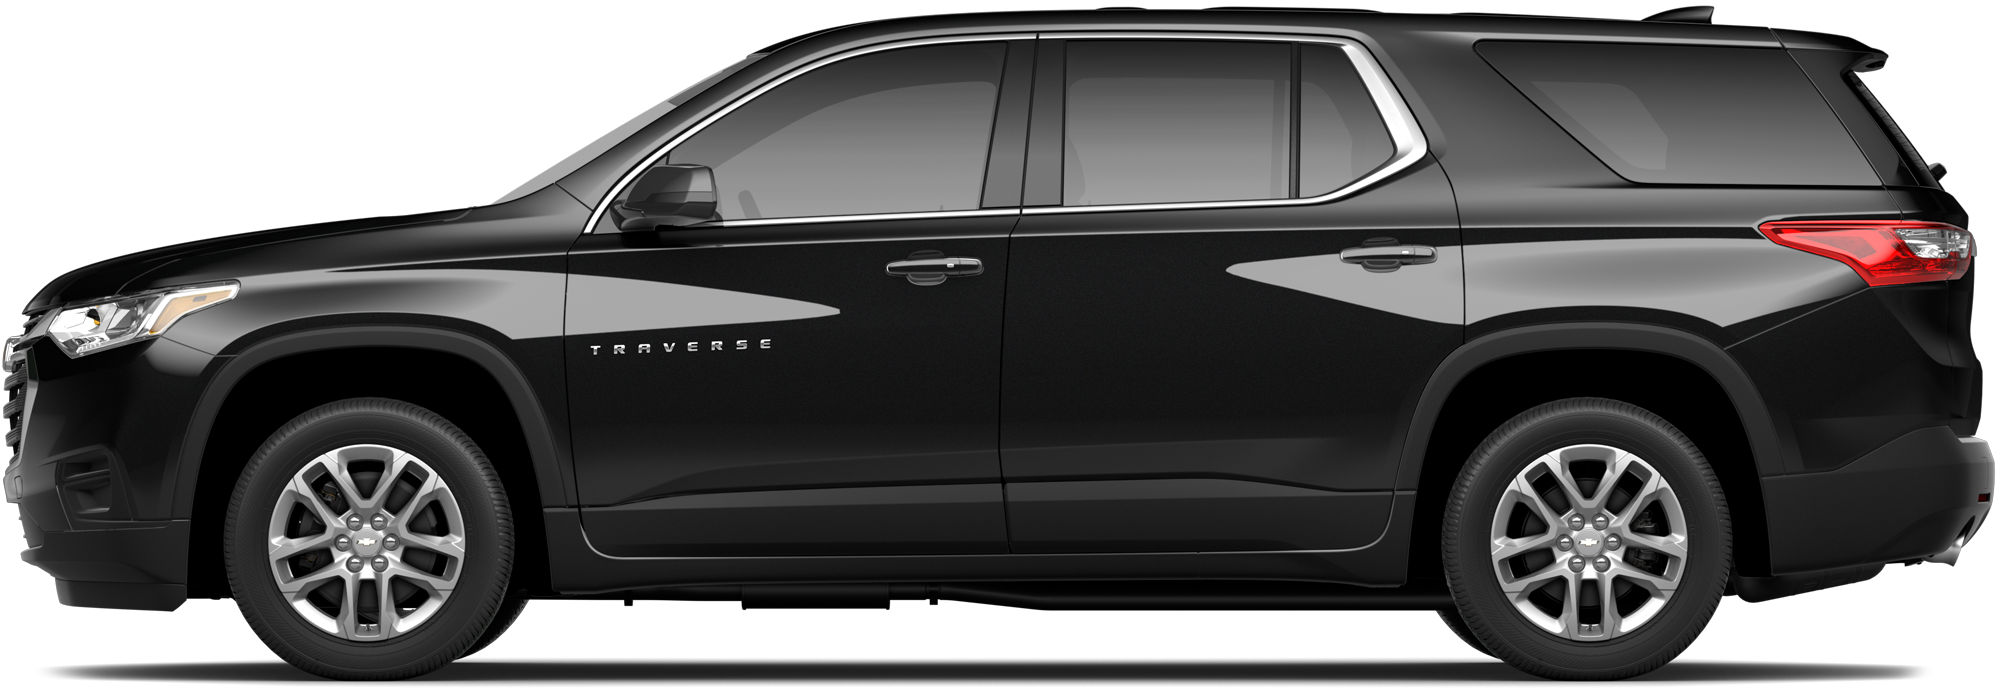 2021 Chevrolet Traverse SUV L